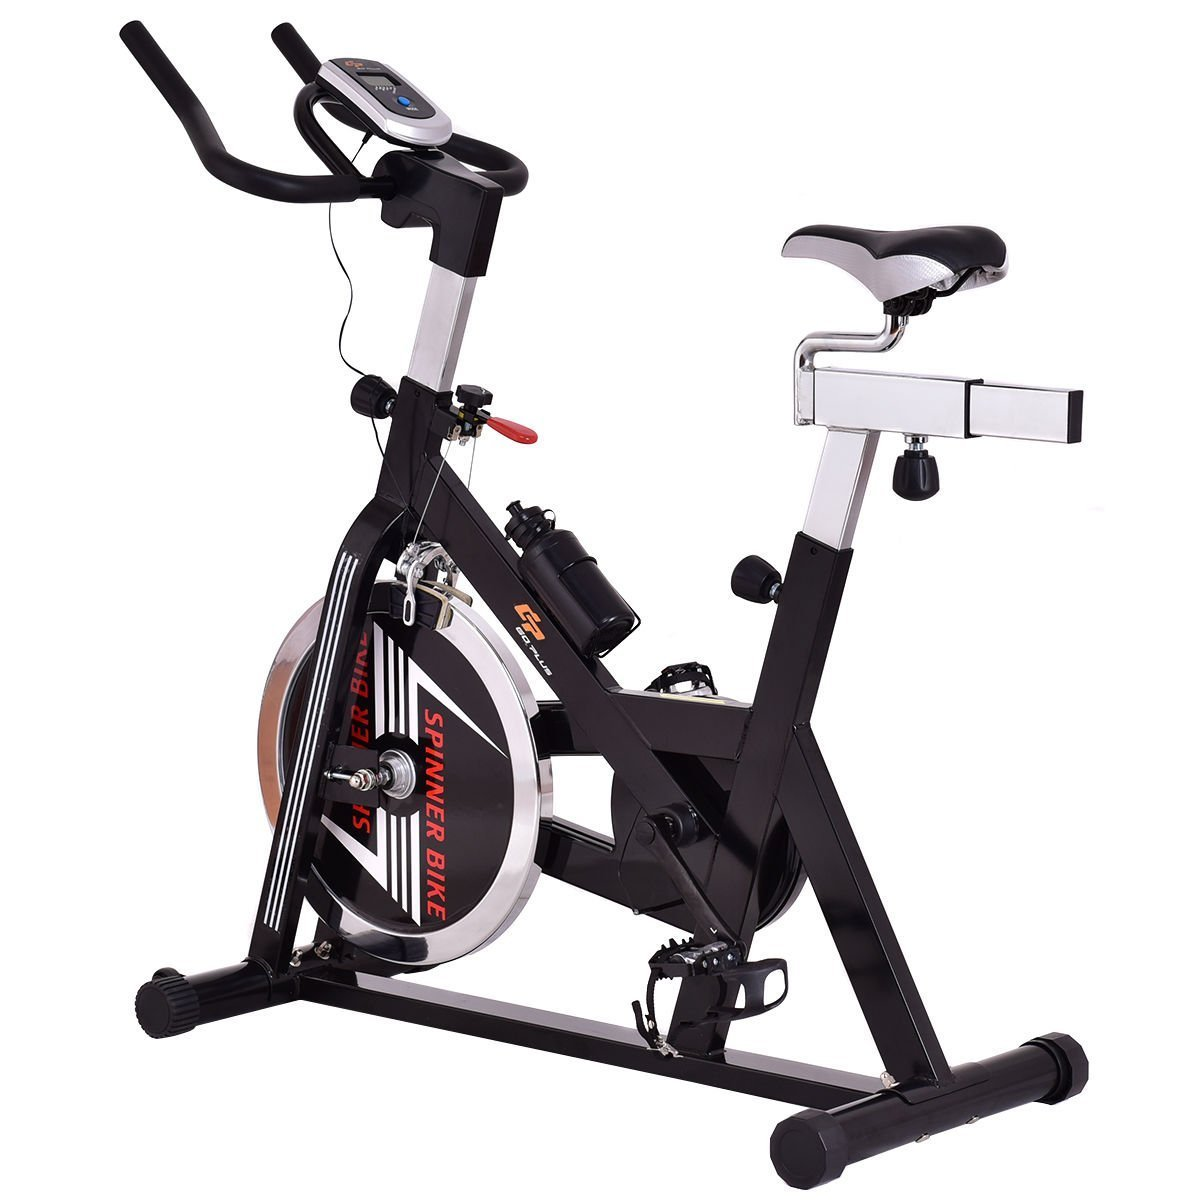 Gymax Stationary Exercise Bike w/ Adjustable Seat and Handlebars, Indoor Cycling Bike Cardio Fitness Home Gym Equipment by Gymax (Image #1)